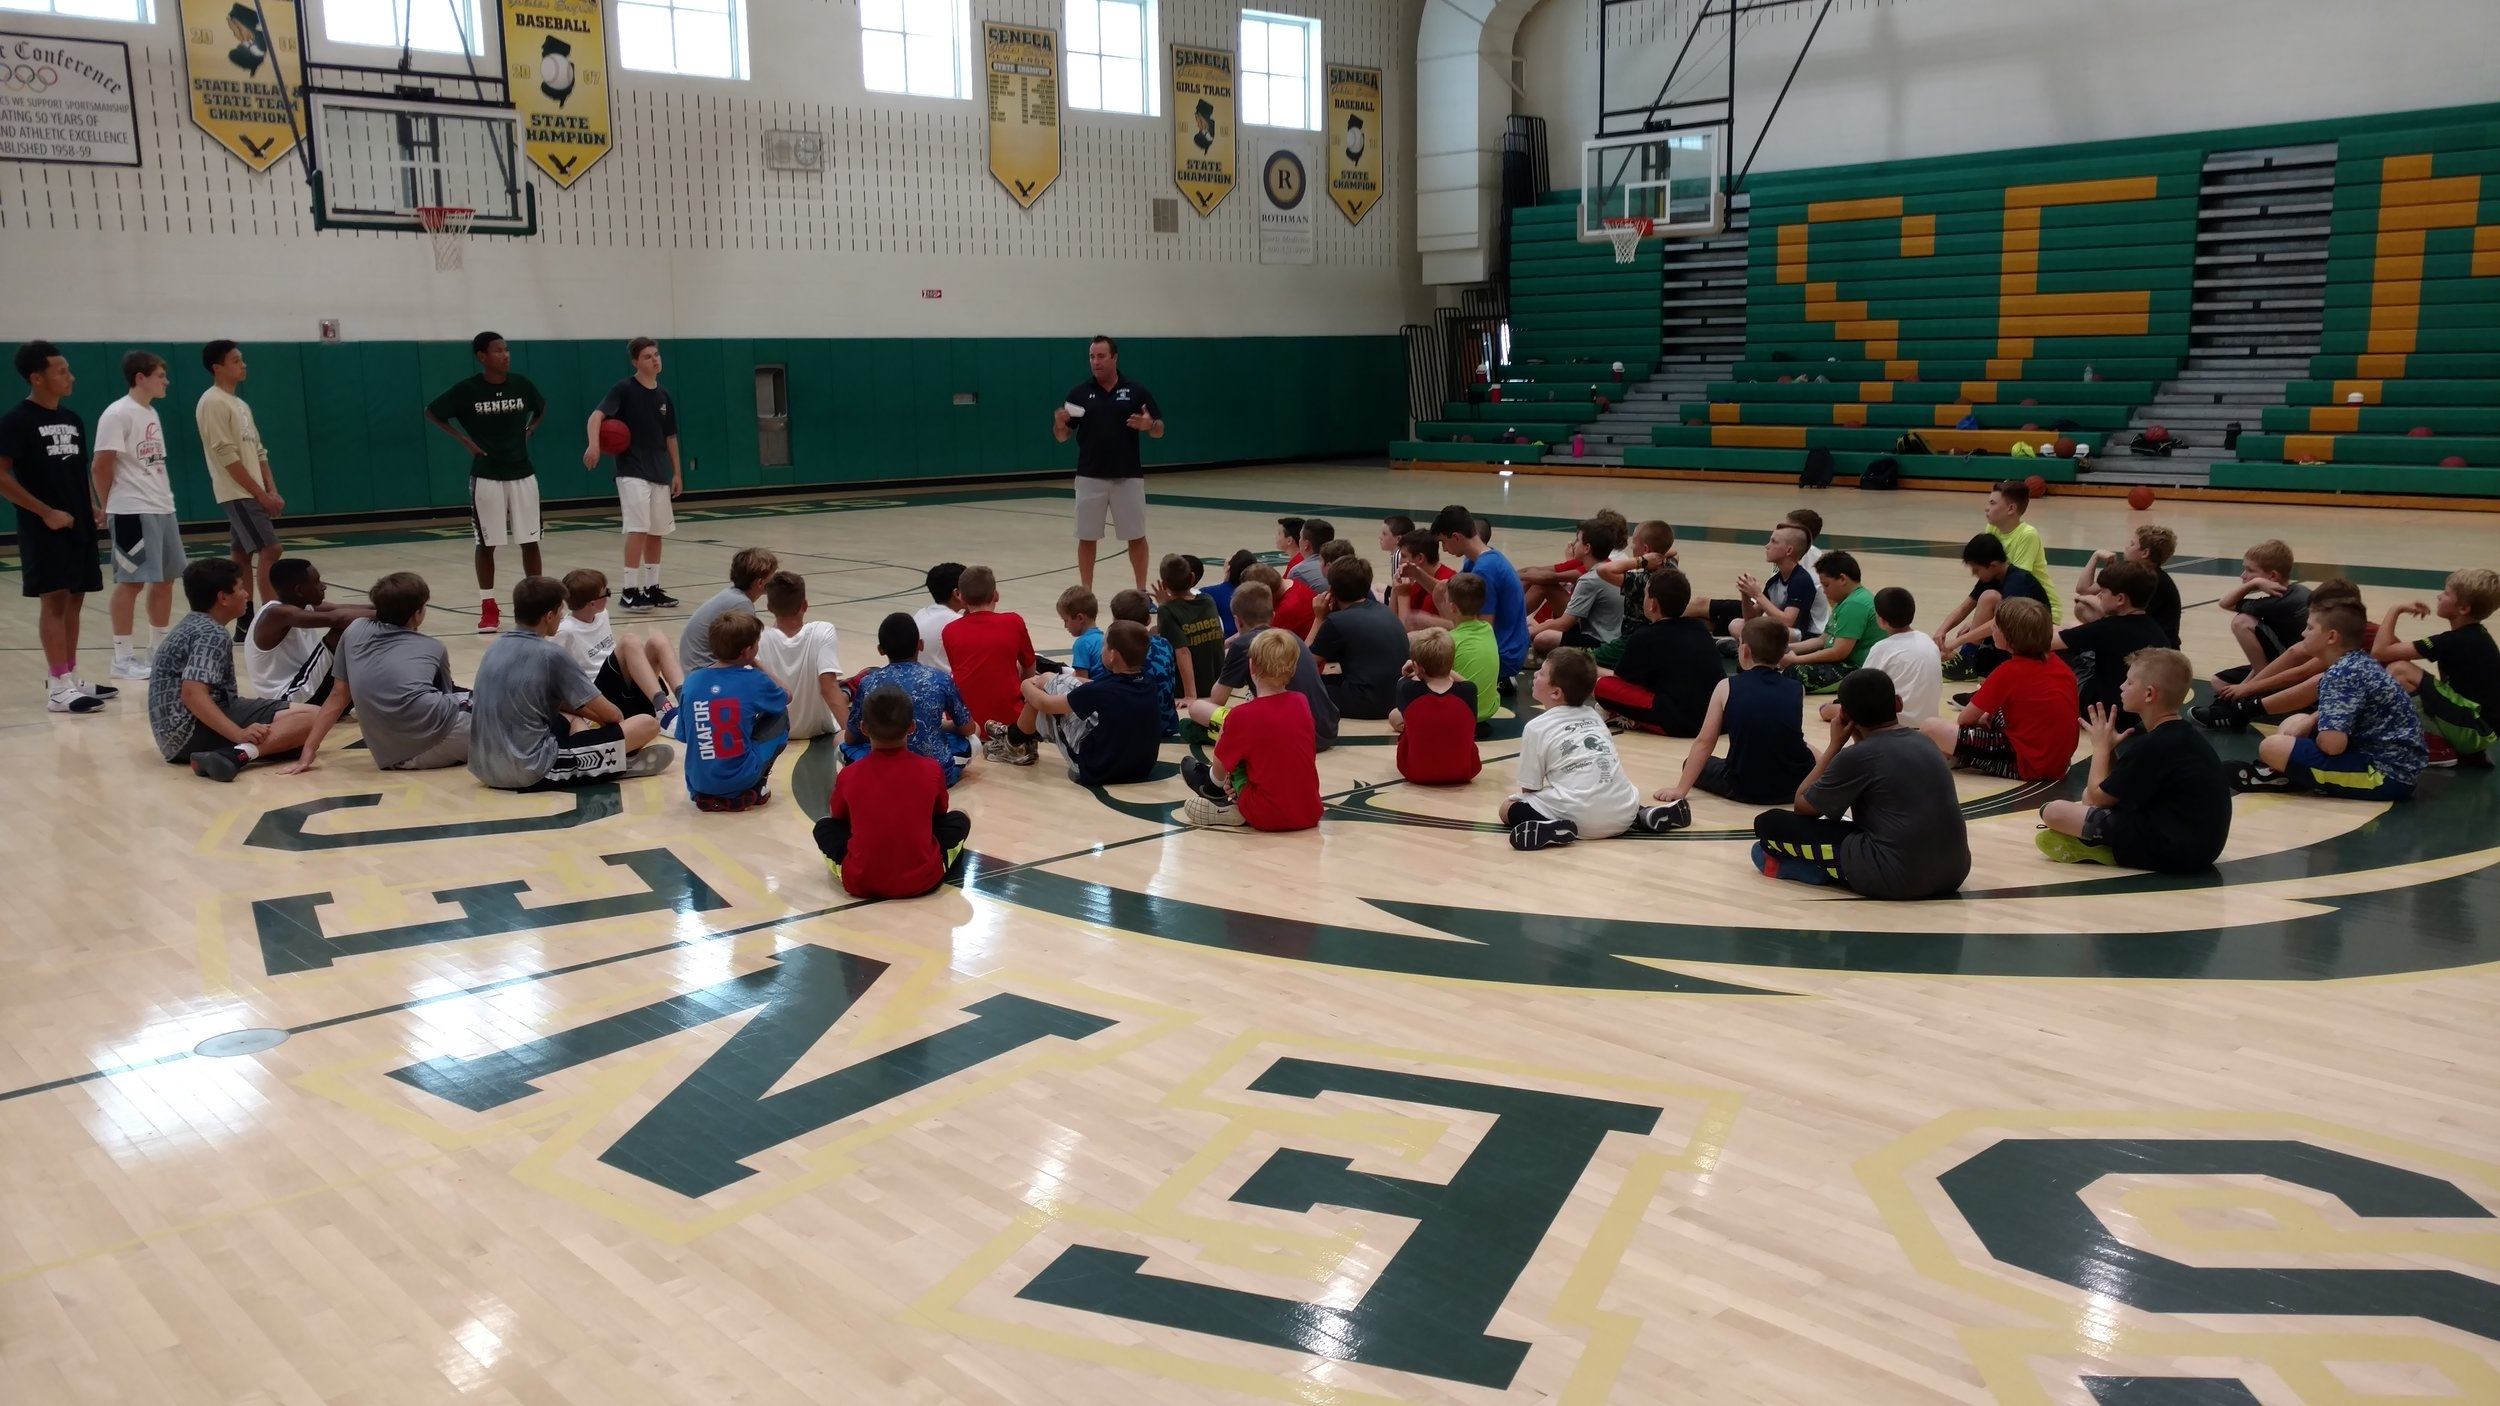 Stockton Head Men's Basketball Coach, Scott Bittner, was a guest speaker & instructor at the July 2017 Seneca Boys Basketball Camp